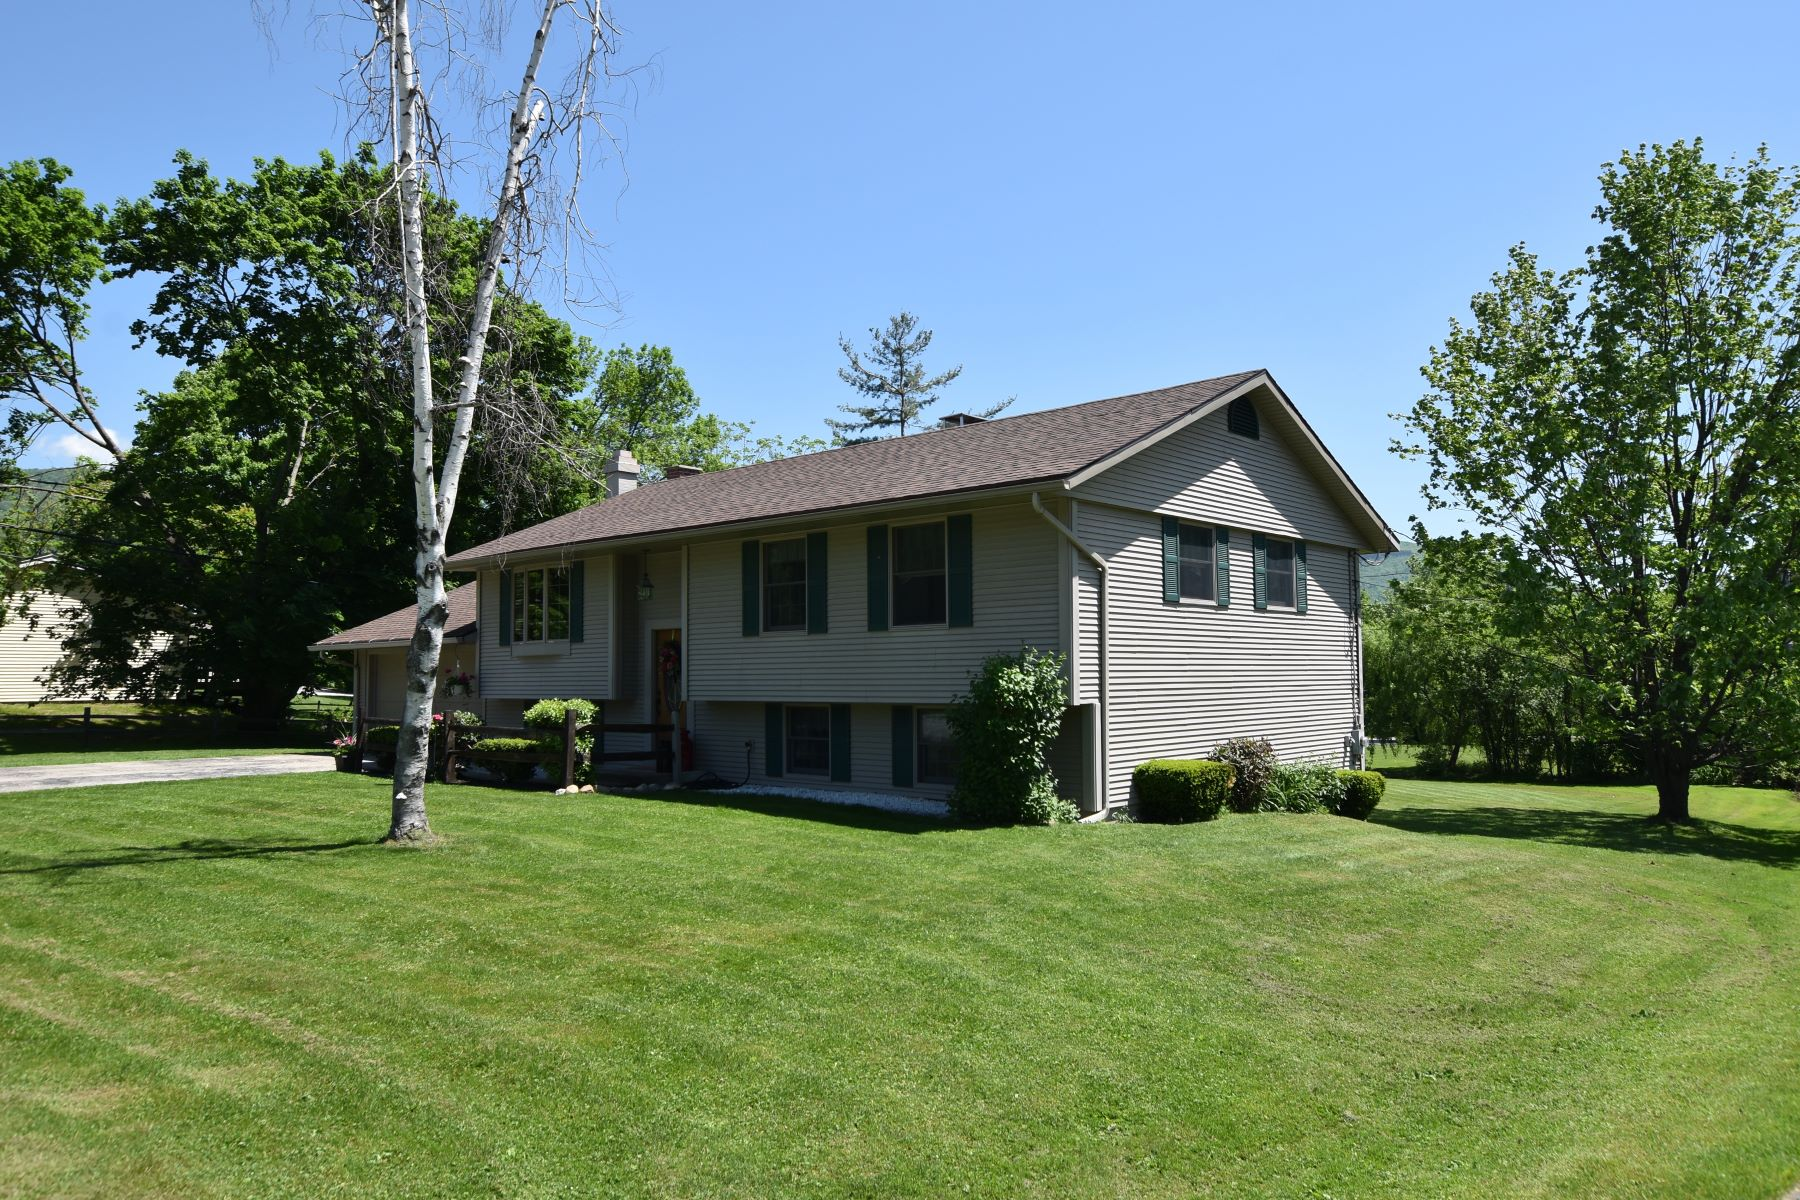 Single Family Home for Sale at Immaculate raised ranch-level yard 20 Piedmont Dr Rutland, Vermont 05701 United States